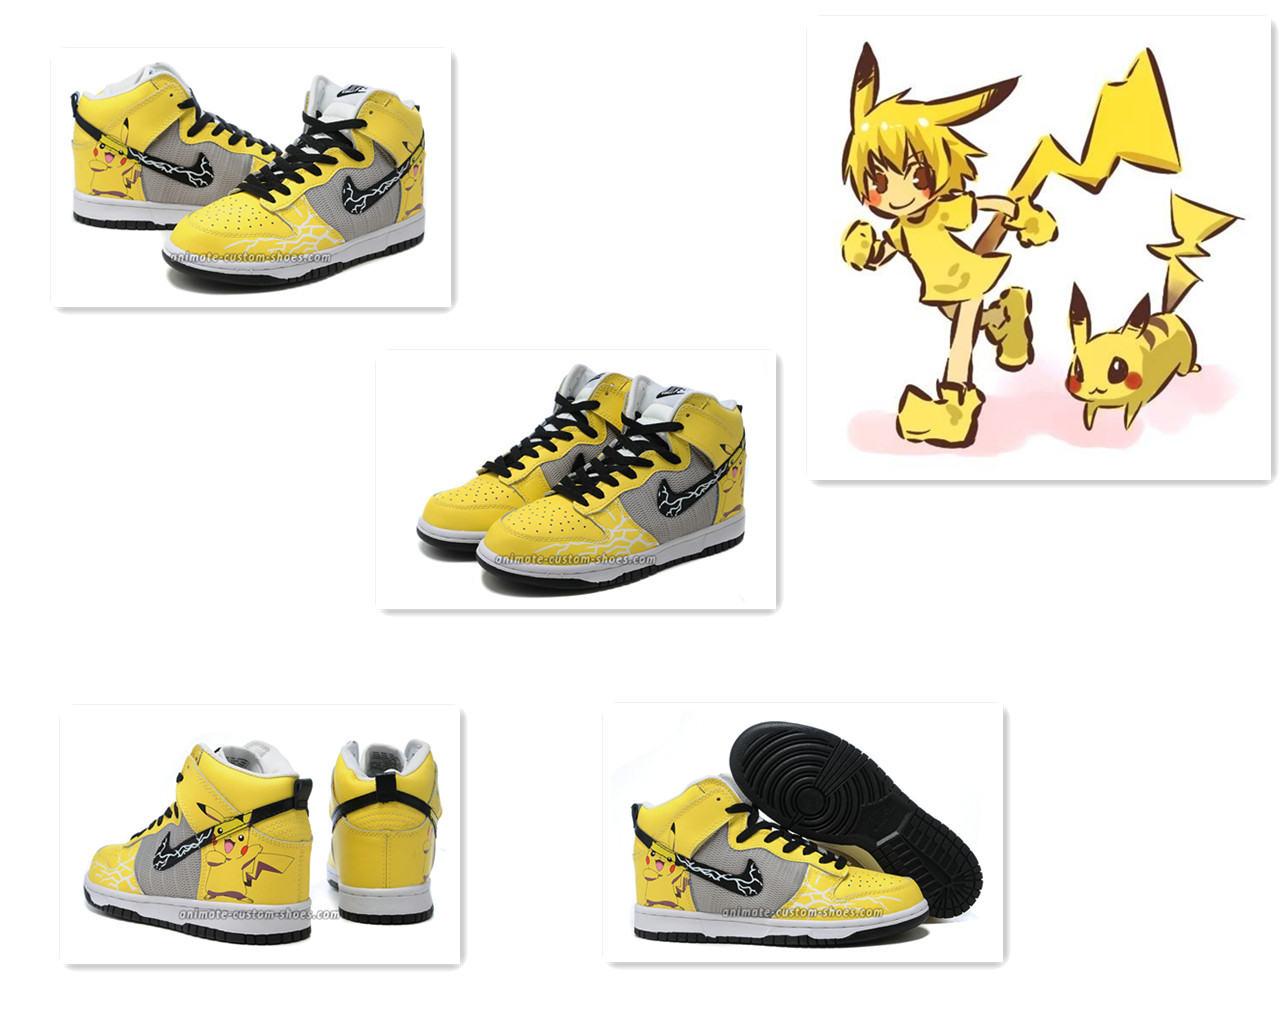 new style 42b15 8b2c8 Pokemon Pikachu Customized Sneakers Nike Dunk High Top